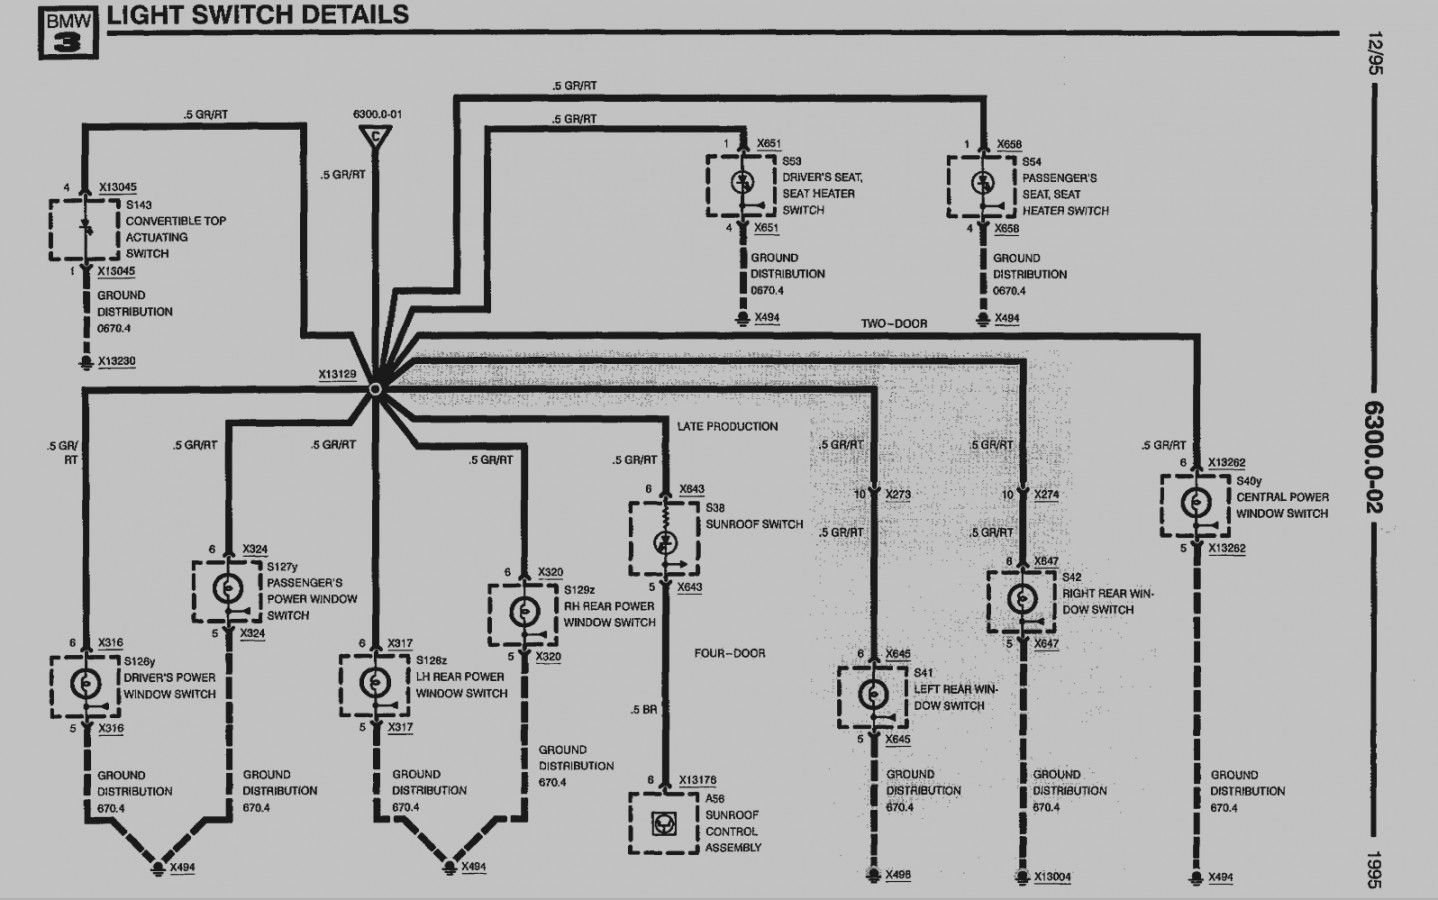 DIAGRAM] Bmw E36 325i Wiring Diagram FULL Version HD Quality Wiring Diagram  - MALTADATABASES.K-DANSE.FRK-danse.fr